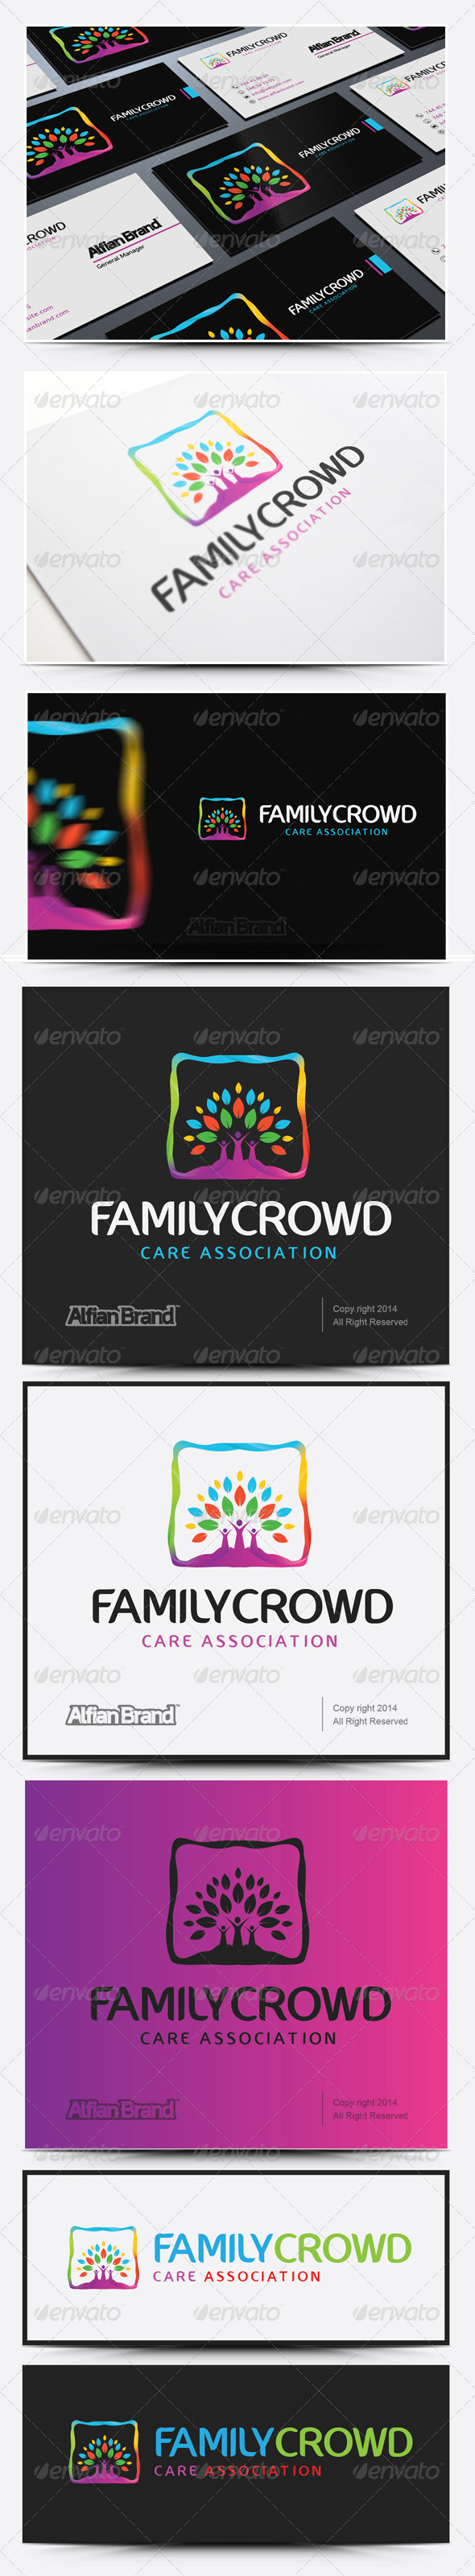 GraphicRiver Family Crowd Logo 8218876